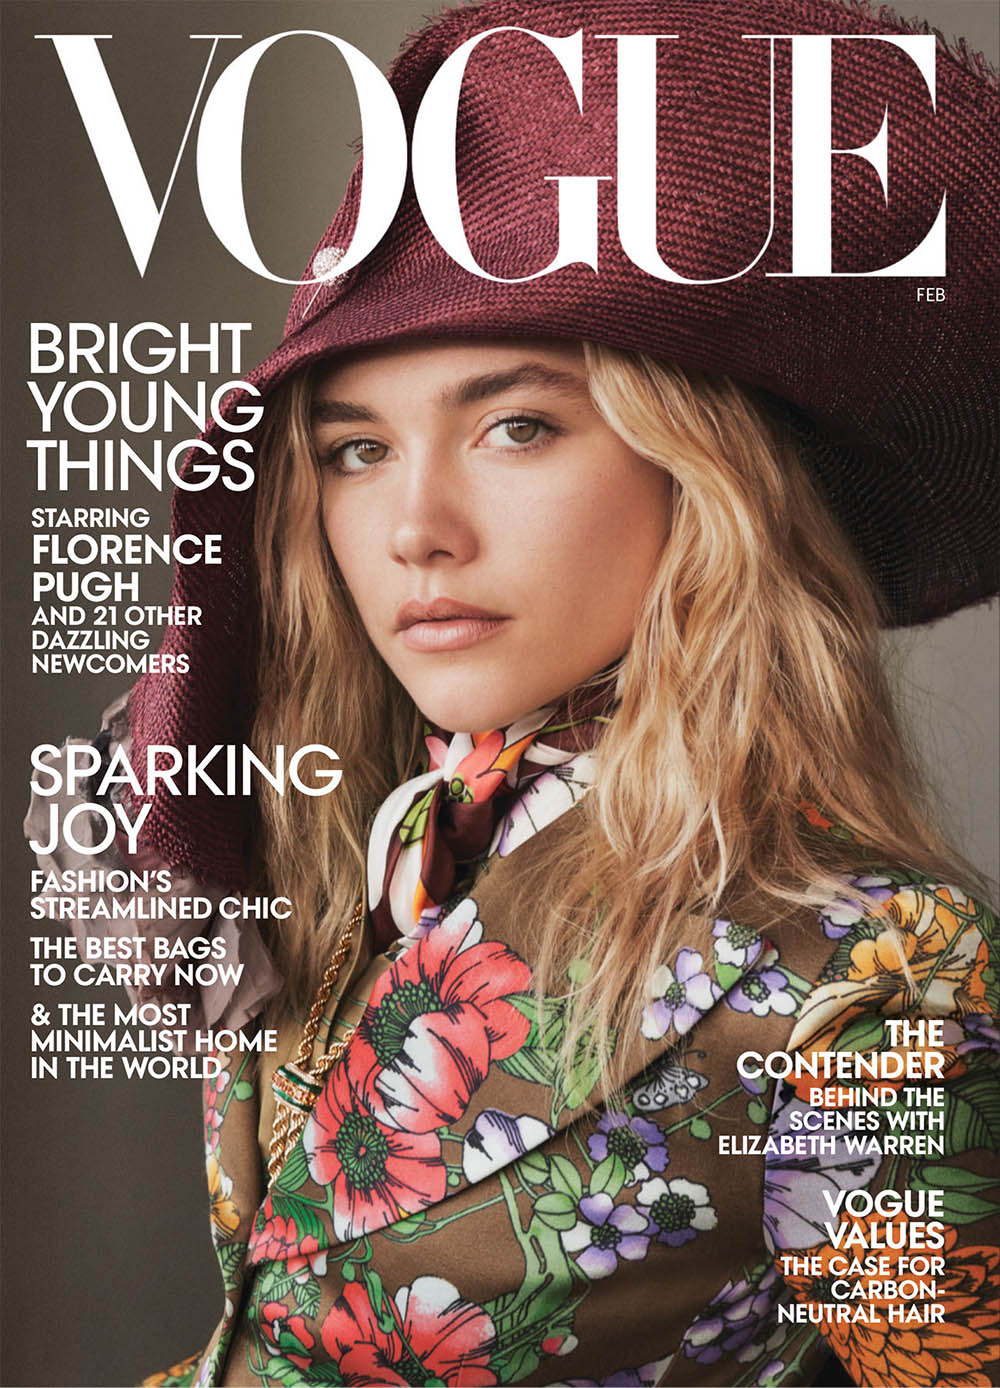 Florence Pugh covers Vogue US February 2020 by Daniel Jackson